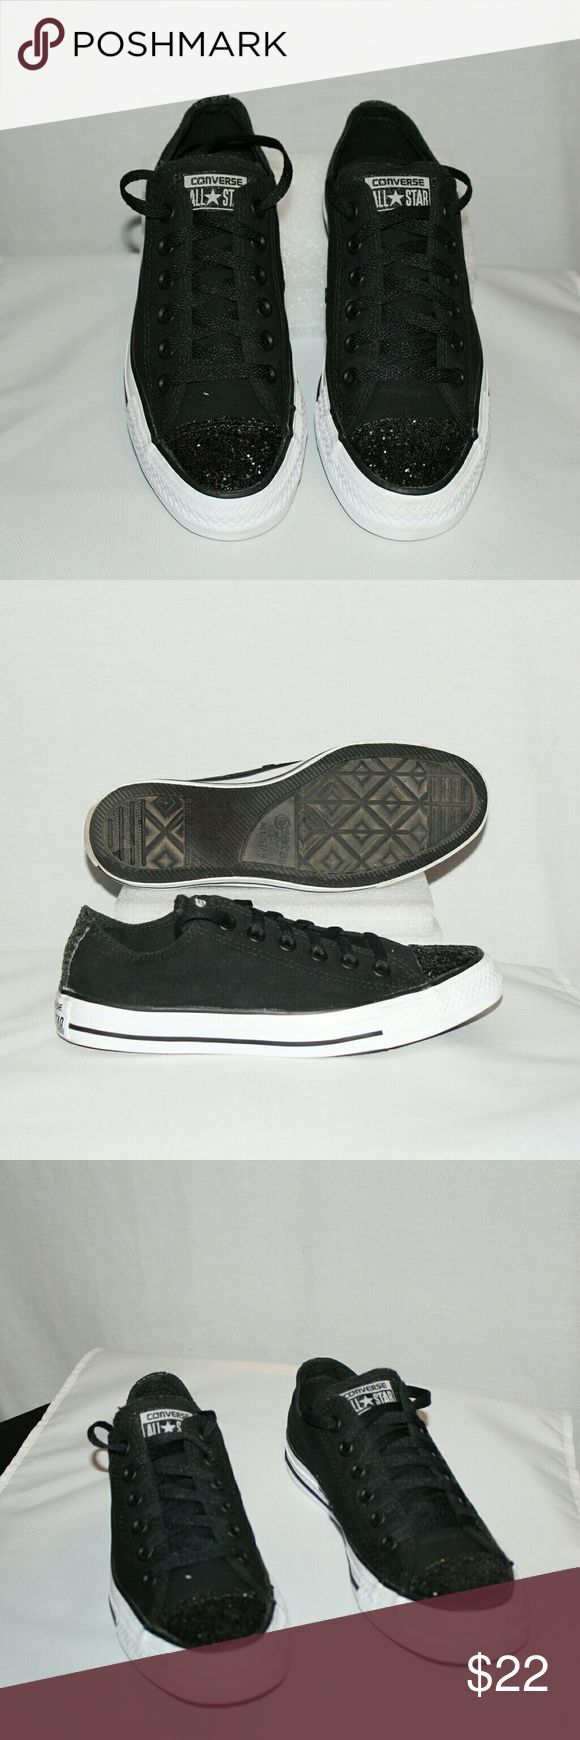 Converse All Stars Converse All Stars,  gently worn condition,  little wearing on the soles,  clean upper canvas , sized for women only, laces ups and go. Converse All Stars Shoes Sneakers